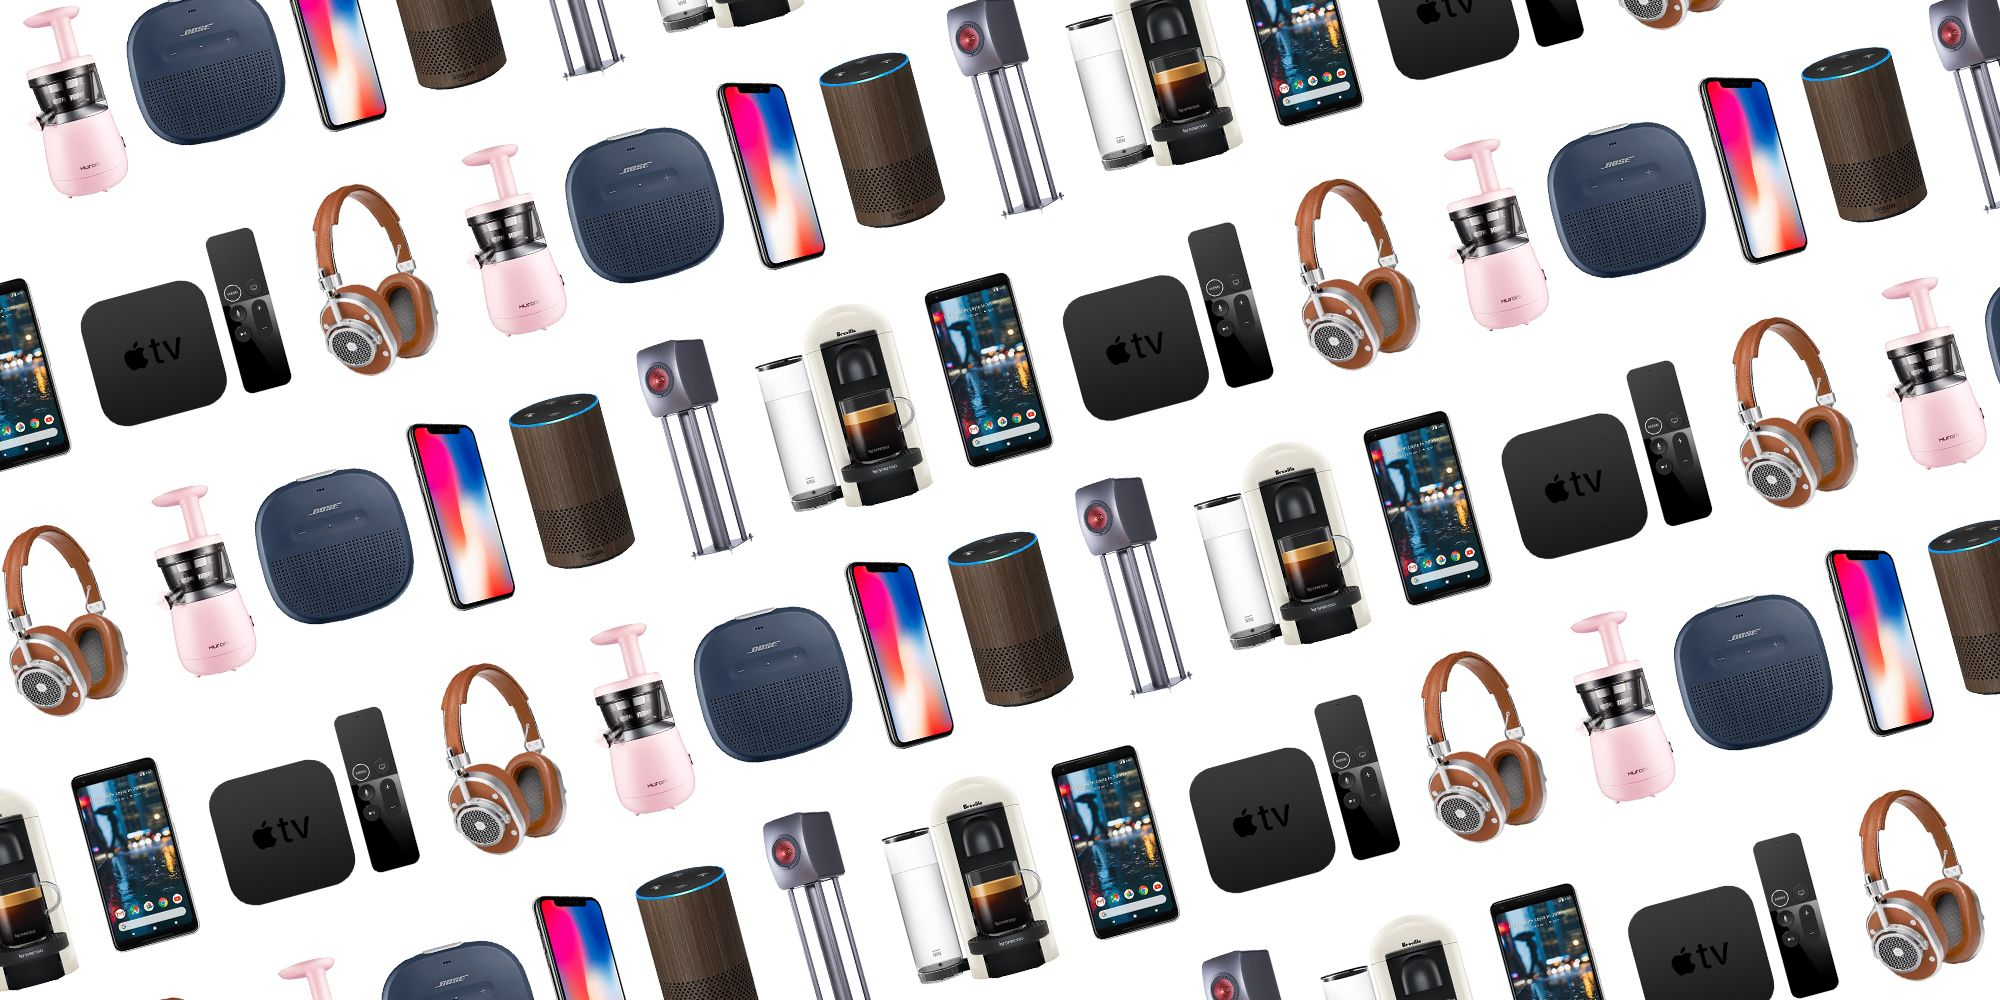 35 Cool Tech Gifts for 2019 - High End Gadget Gift Ideas for Everyone